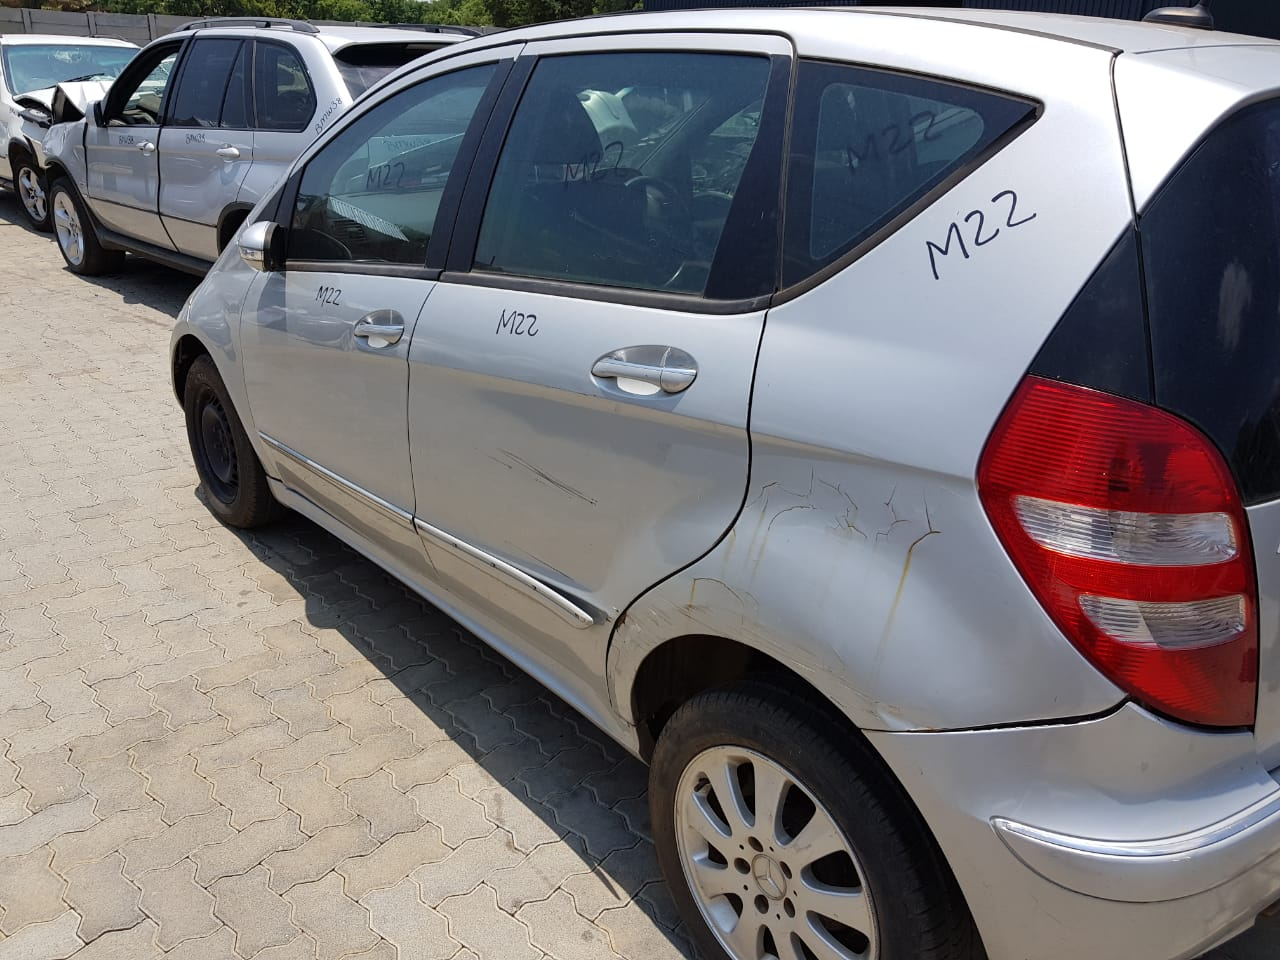 Mercedes A Class Spares and Parts For Sale At DTB Spares